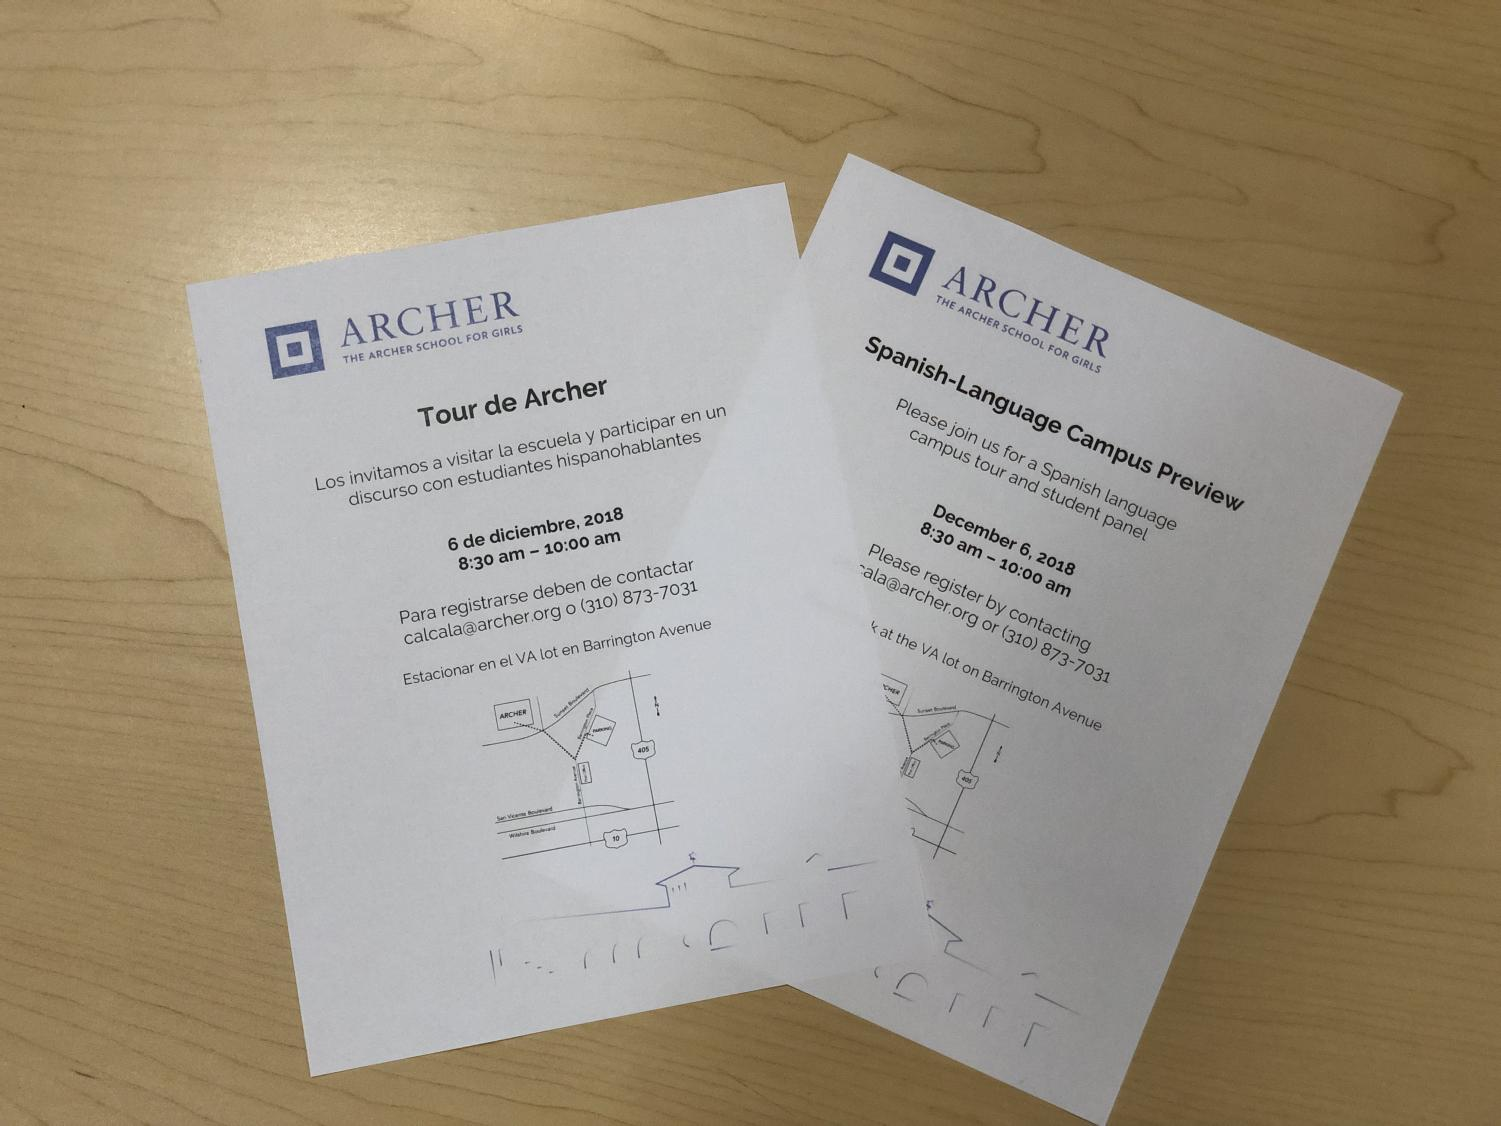 Invitations in Spanish and English for Archer's Spanish-Language Campus Preview rest on a table. The event happens every December for families interested in applying for Archer.